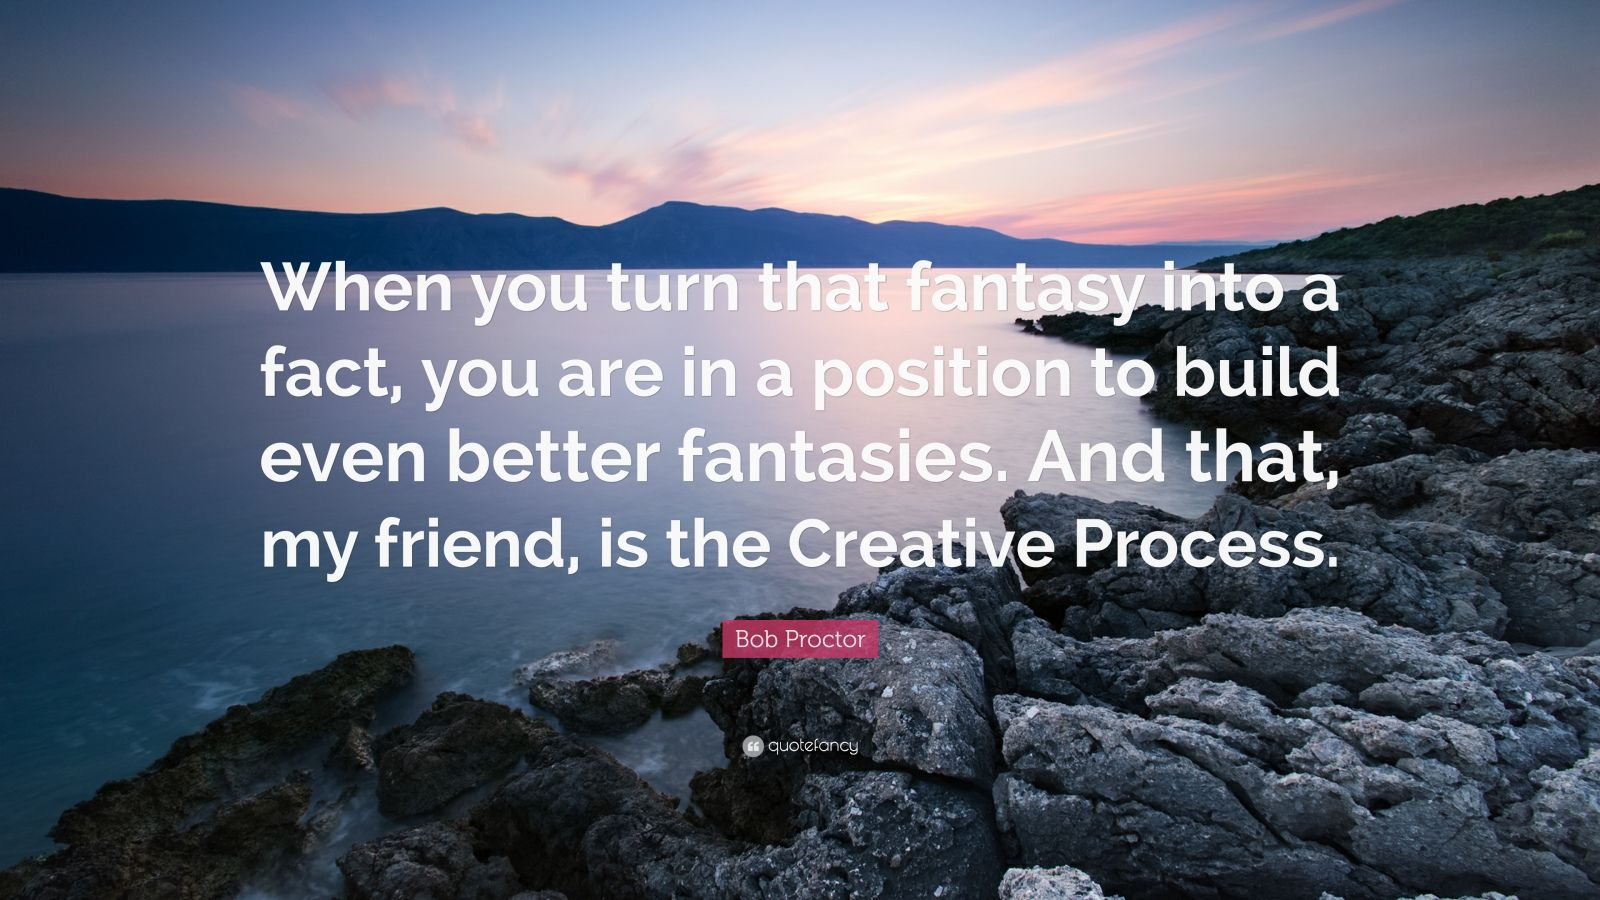 """Bob Proctor Quote: """"When you turn that fantasy into a fact, you are in a position to build even better fantasies. And that, my friend, is the Creative Process."""""""